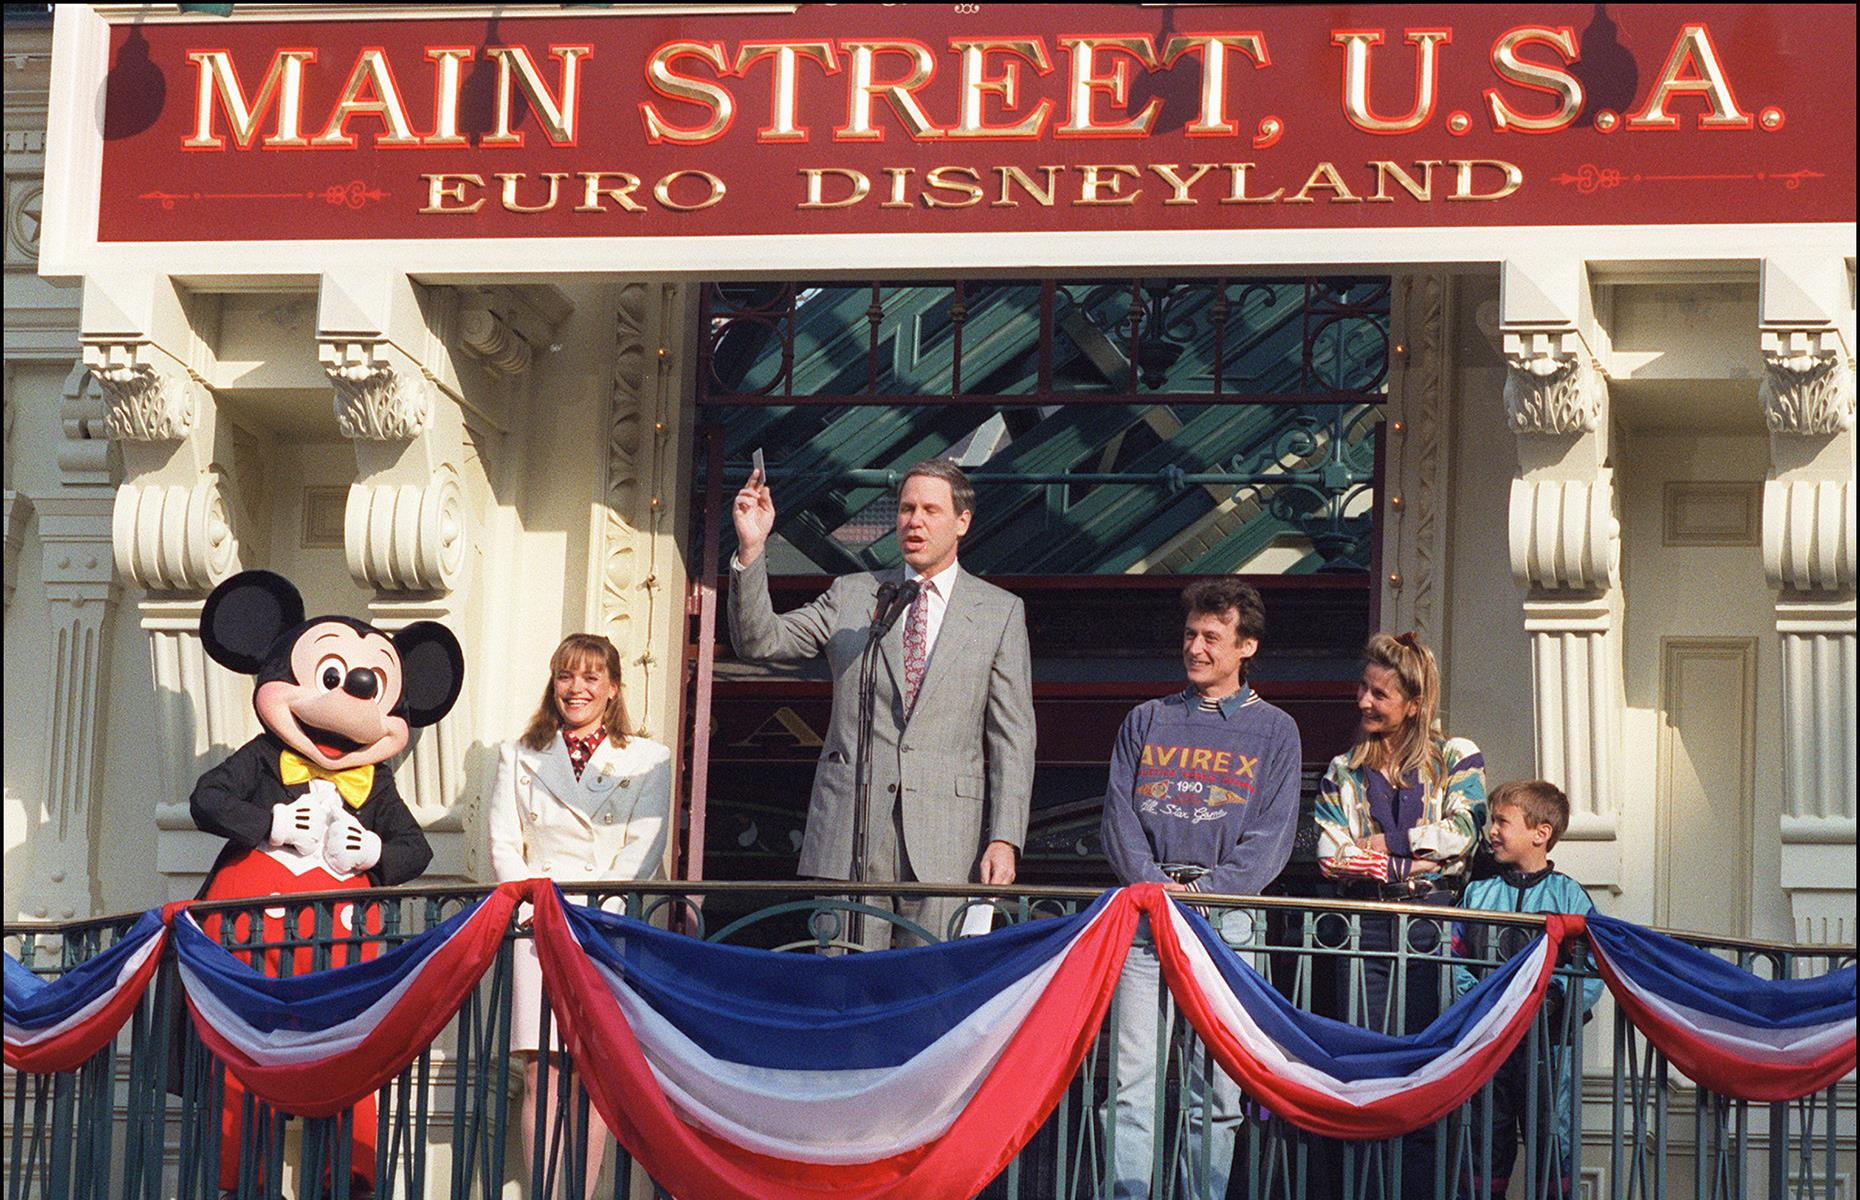 Slide 34 of 38: On the official opening day, then-chairman of the Walt Disney Company Michael Eisner gave a speech to an expectant crowd. Here he's seen at the entrance to Main Street, U.S.A holding up the very first entry ticket to the park. It's reported that the family who bought this ticket were granted free entry to the park for life.